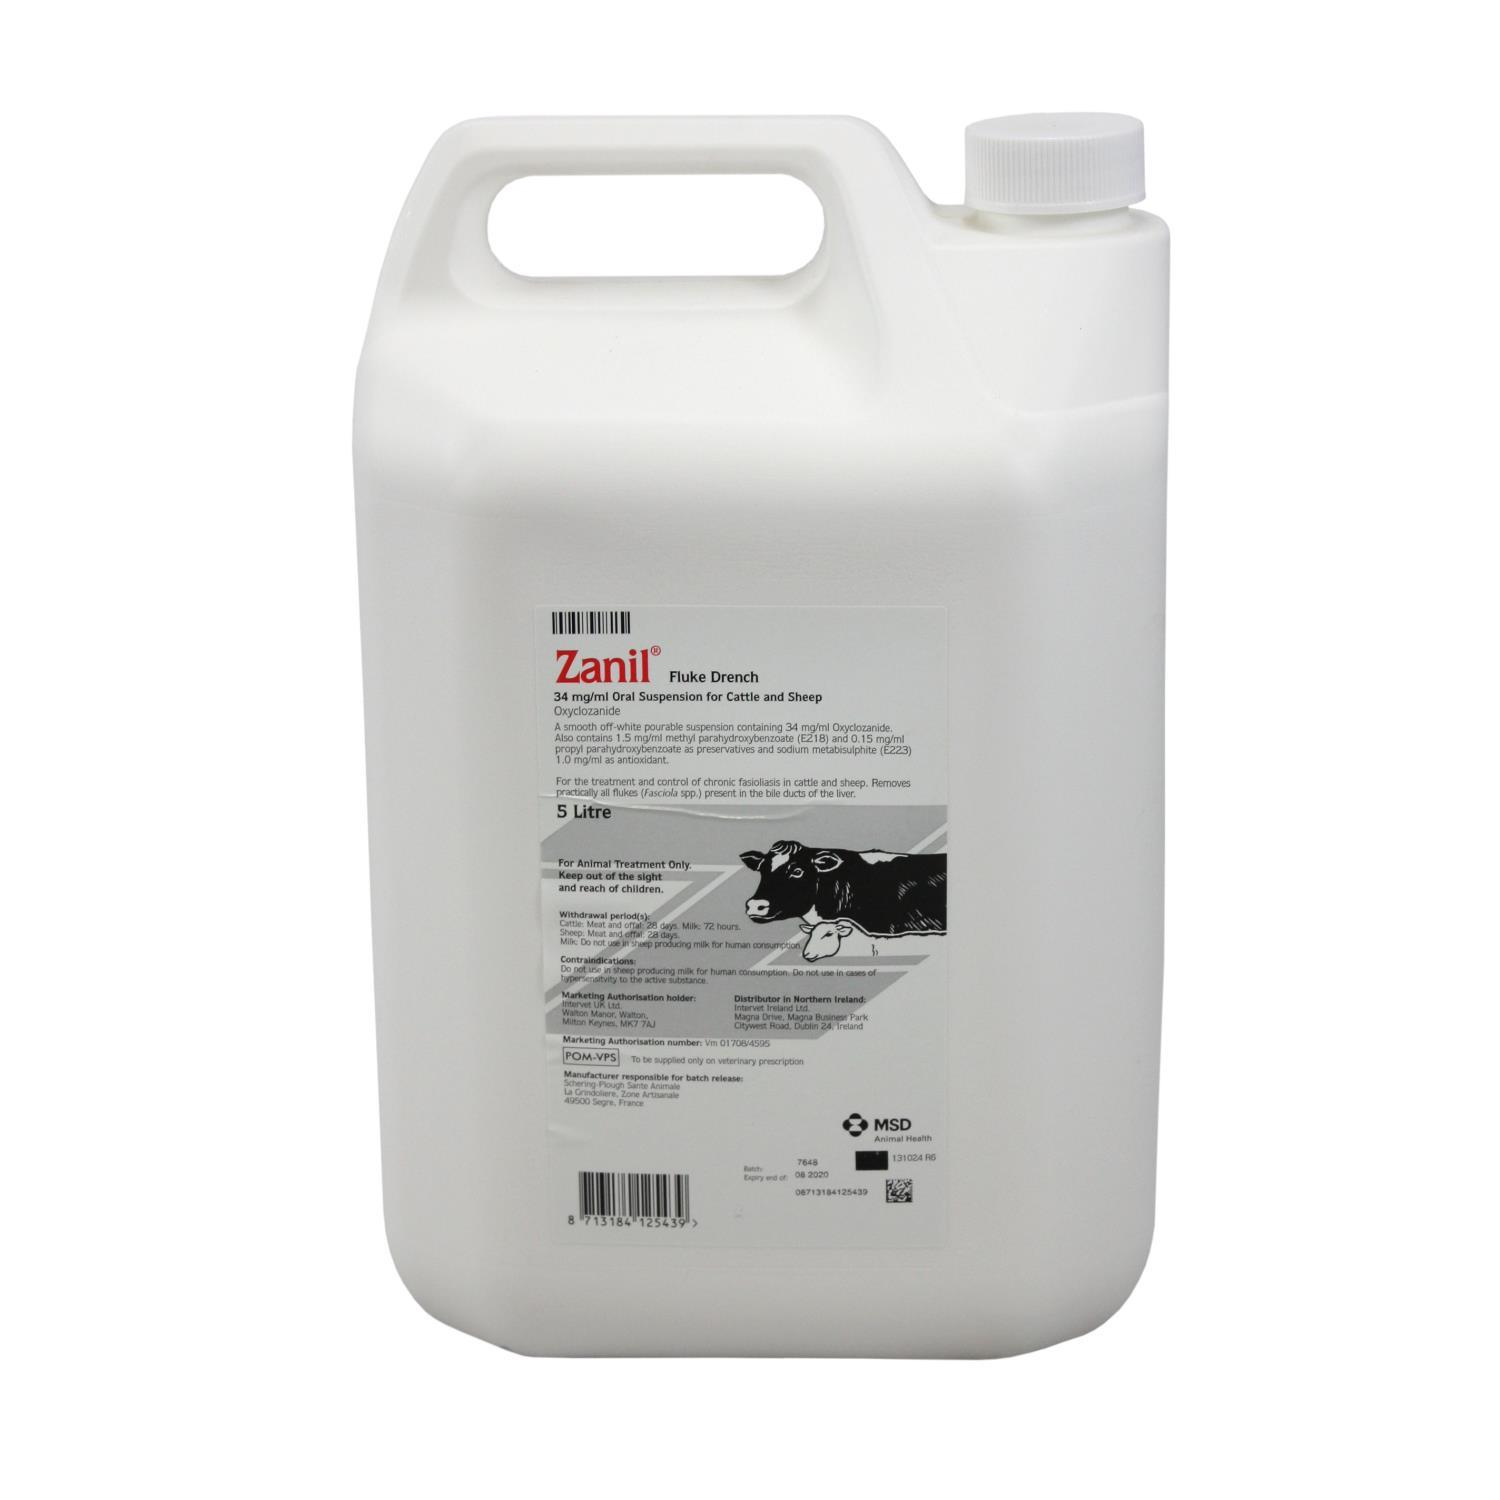 Buy Zanil Fluke Drench 5L from Fane Valley Stores Agricultural Supplies